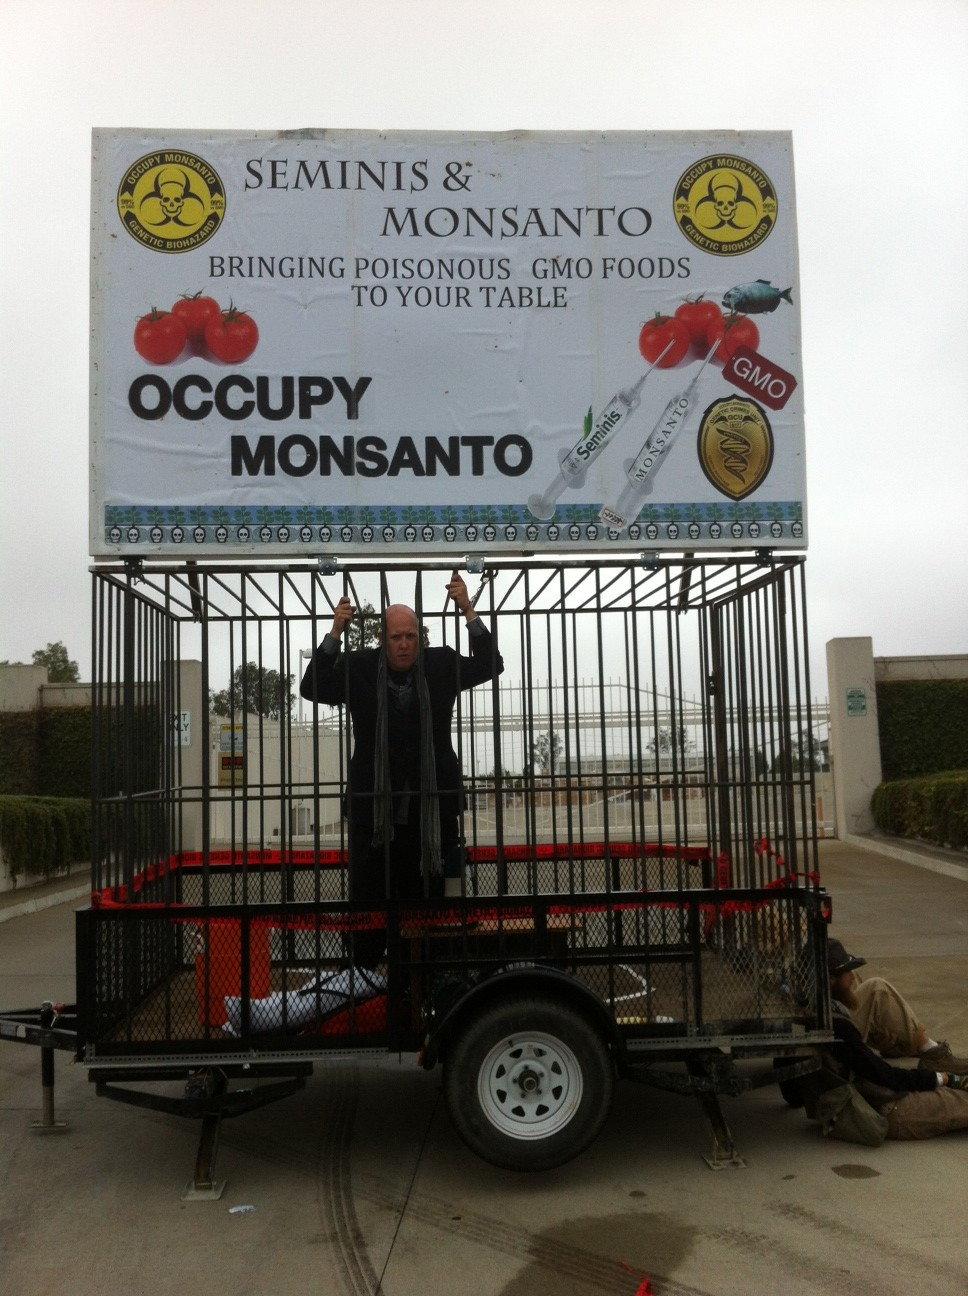 oxnard action photo 1 e1347530016744 Photos of GCU Field Agents occupying Monsantos Oxnard facility Seminis Protest Oxnard Occupy Monsanto GMO Seeds GCU Direct Action Decontamination Event CA